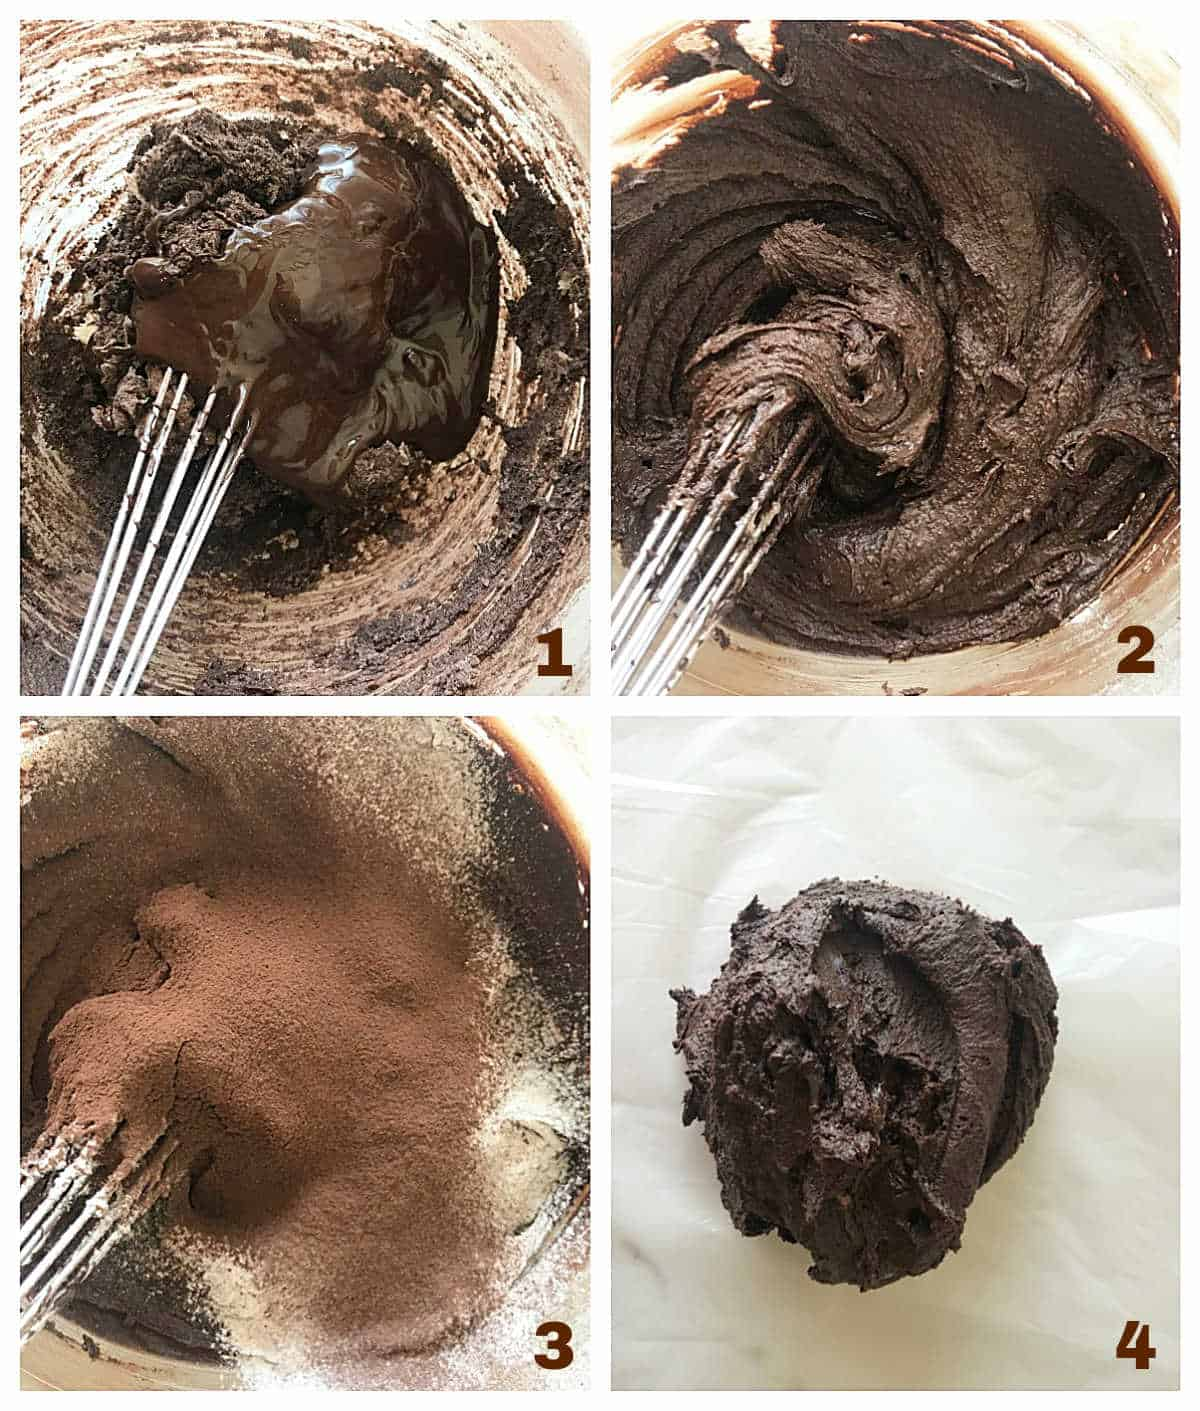 Collage with process steps making chocolate cookies, a glass bowl and metal whisk